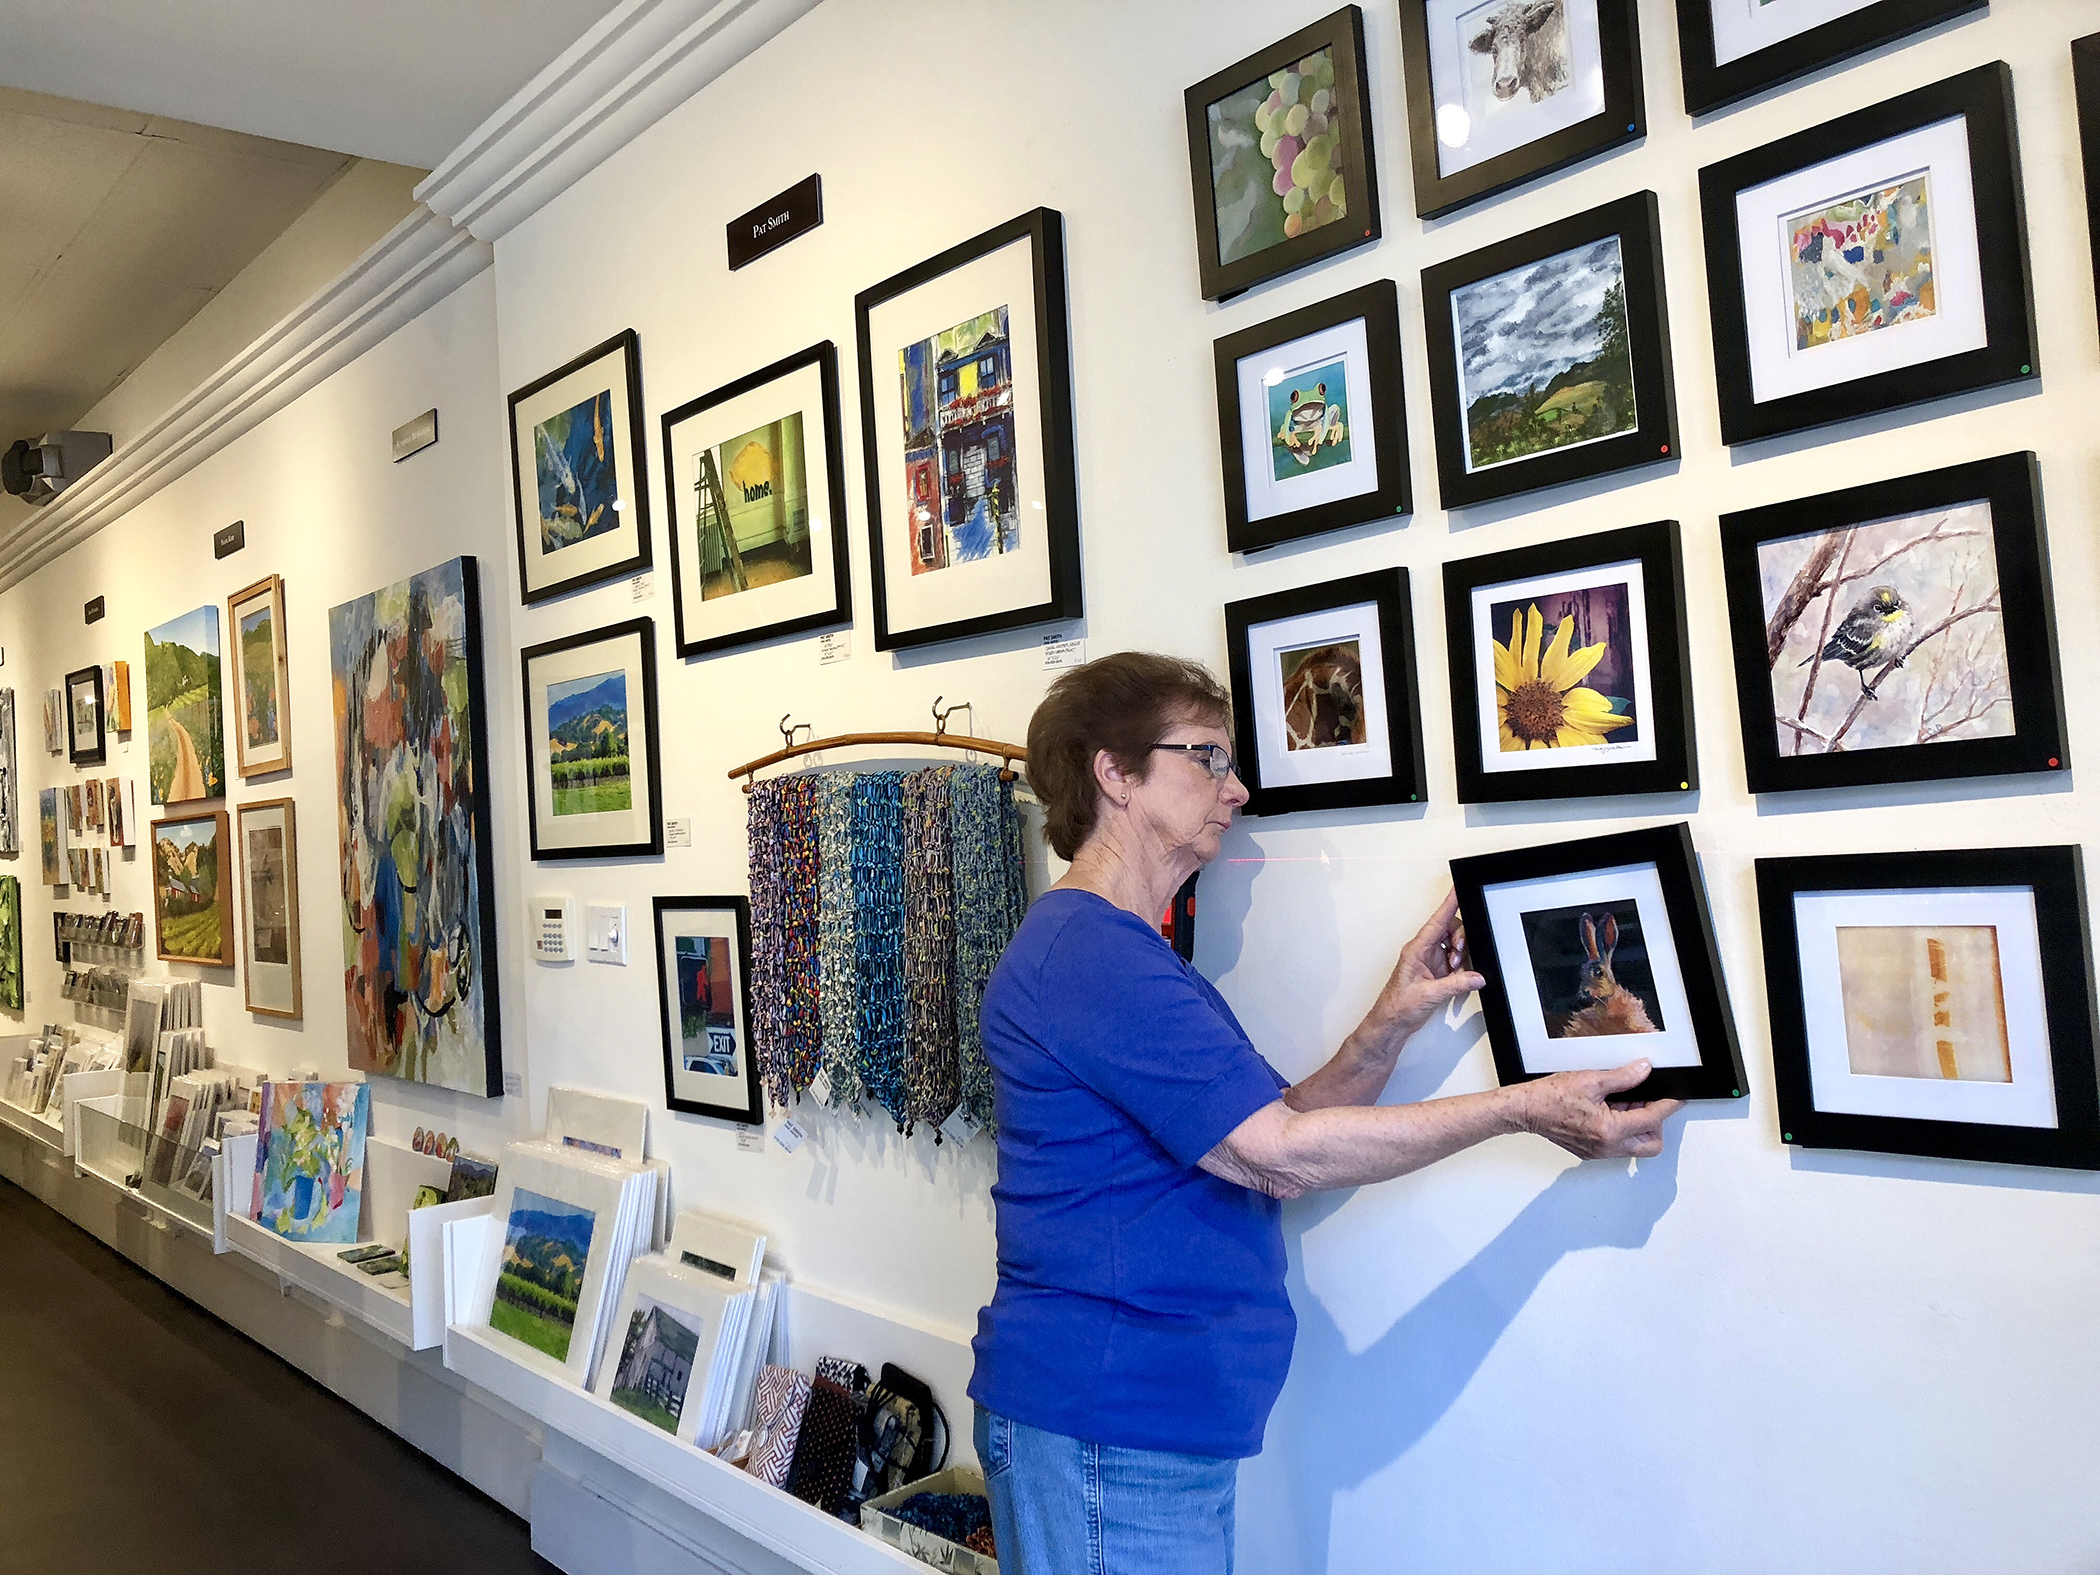 Jean Dillon hanging paintings at the Art Gallery